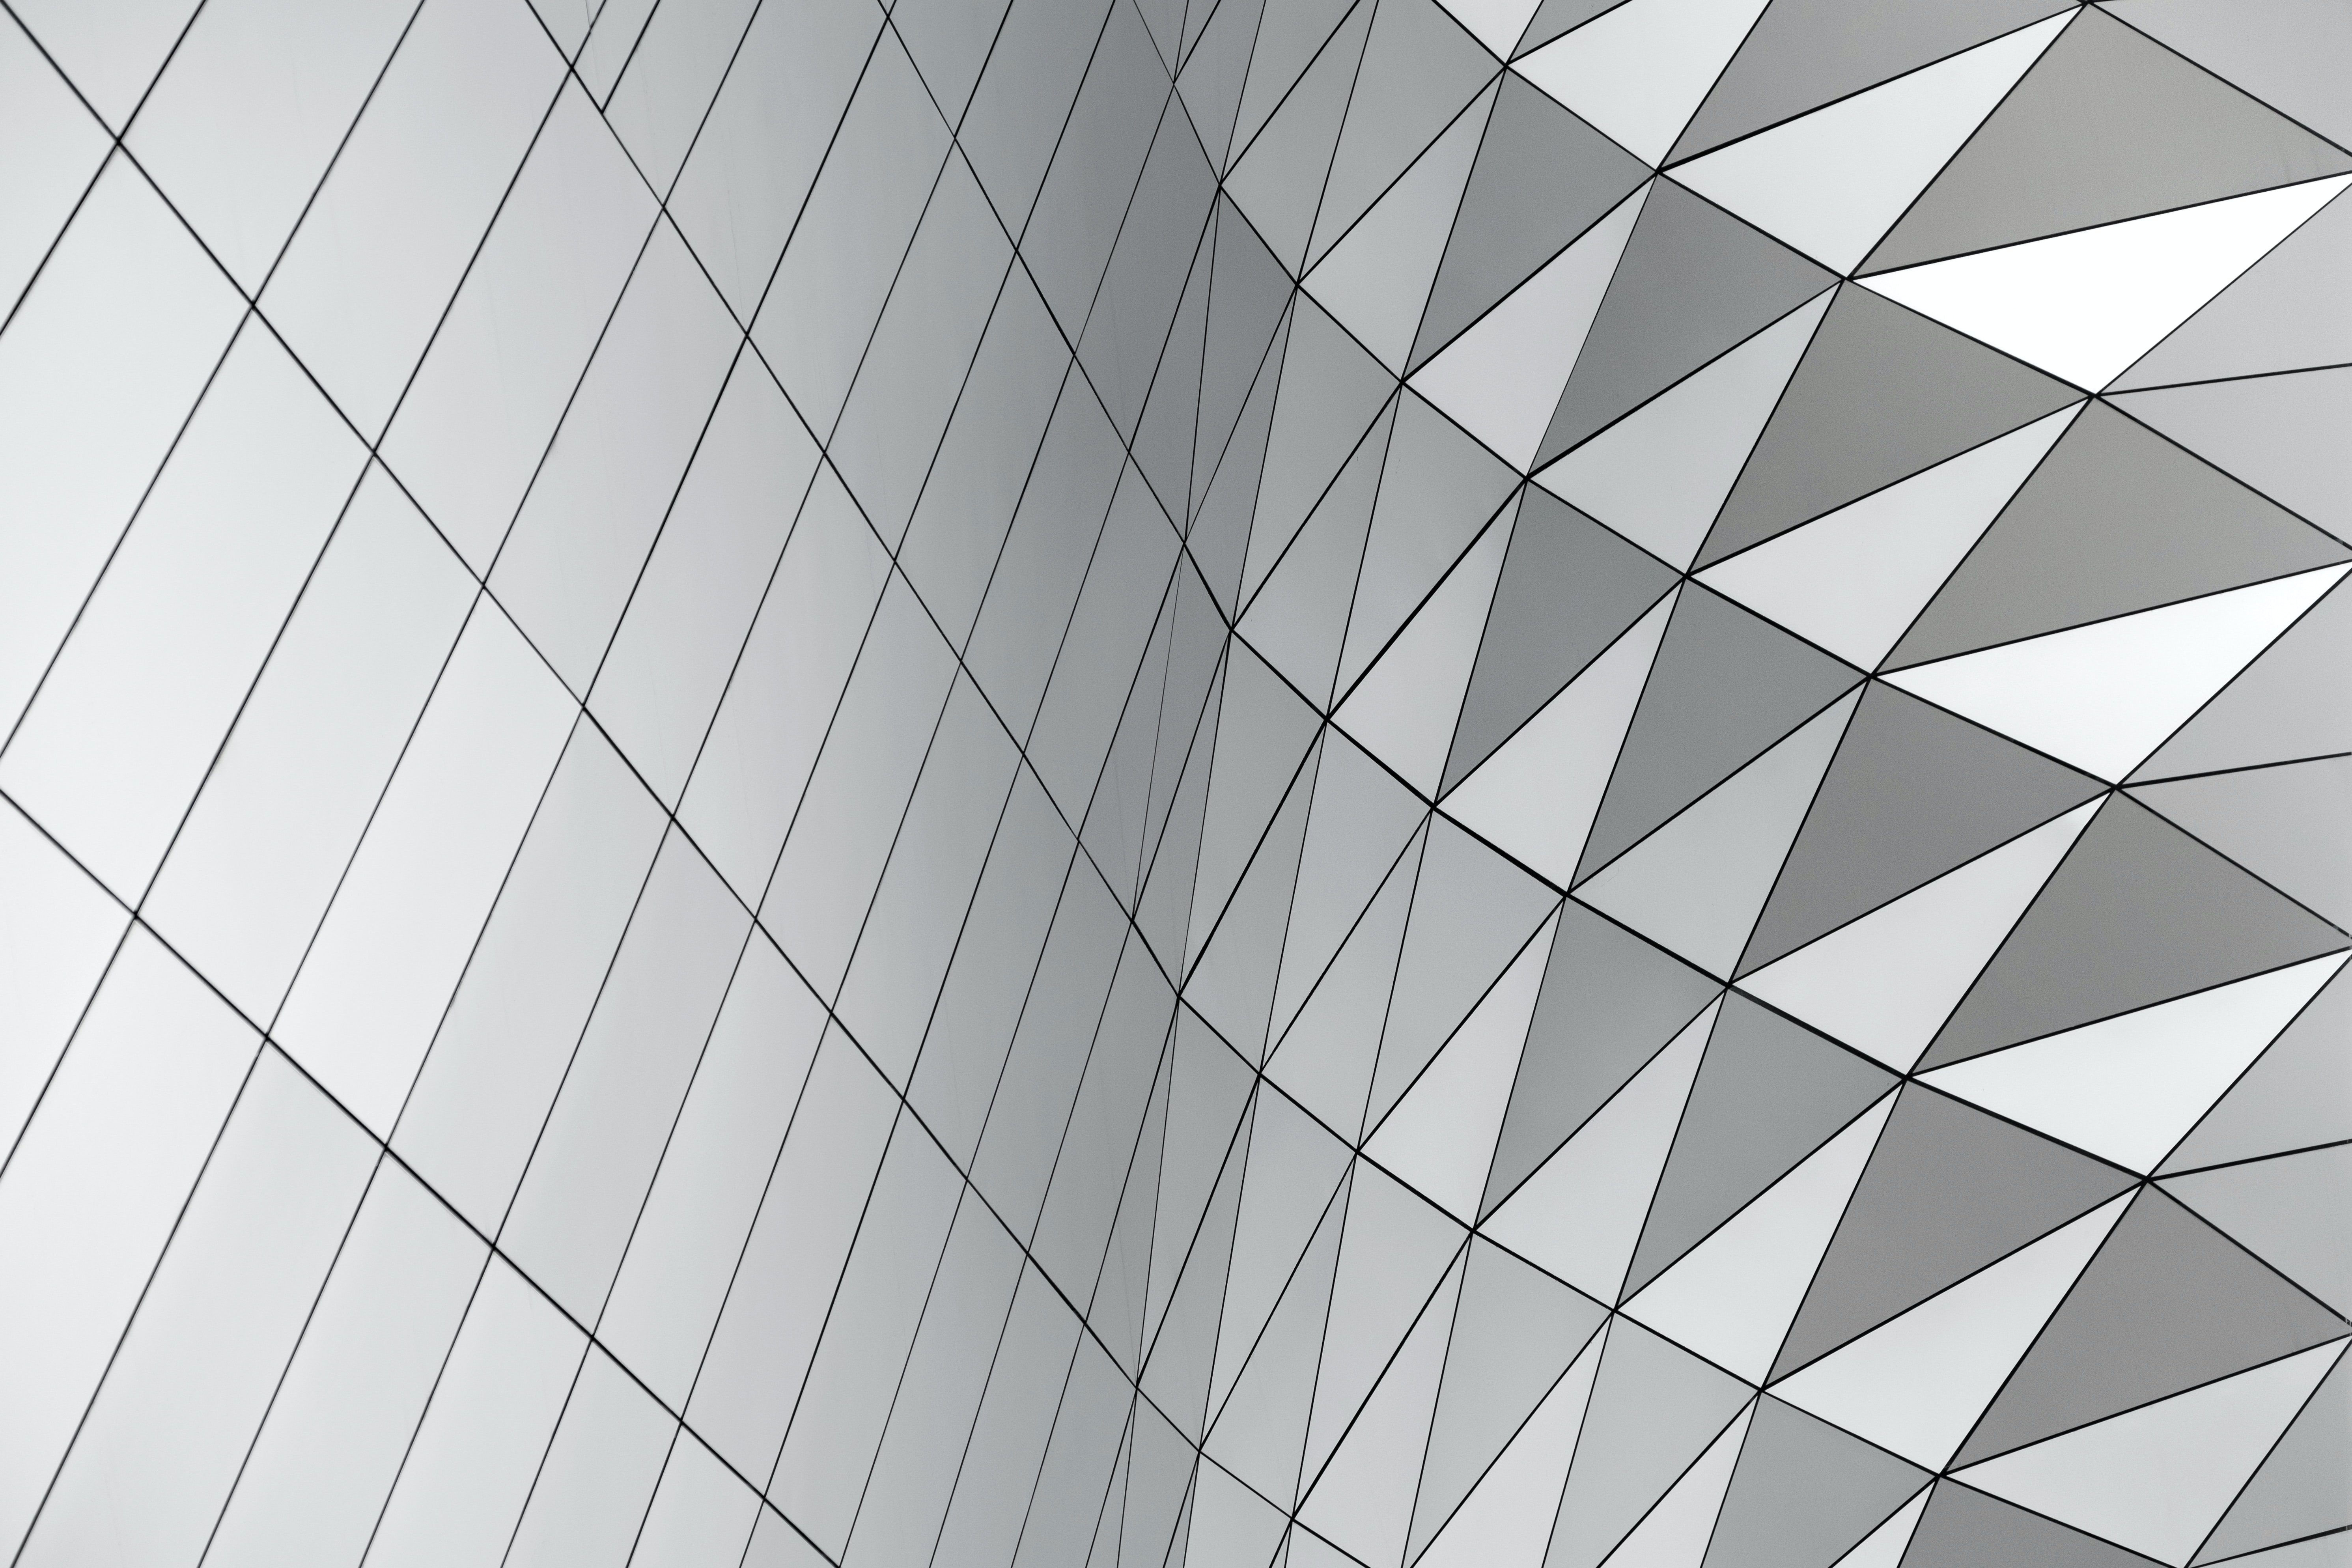 A pattern with squares and triangles in a curving gray facade